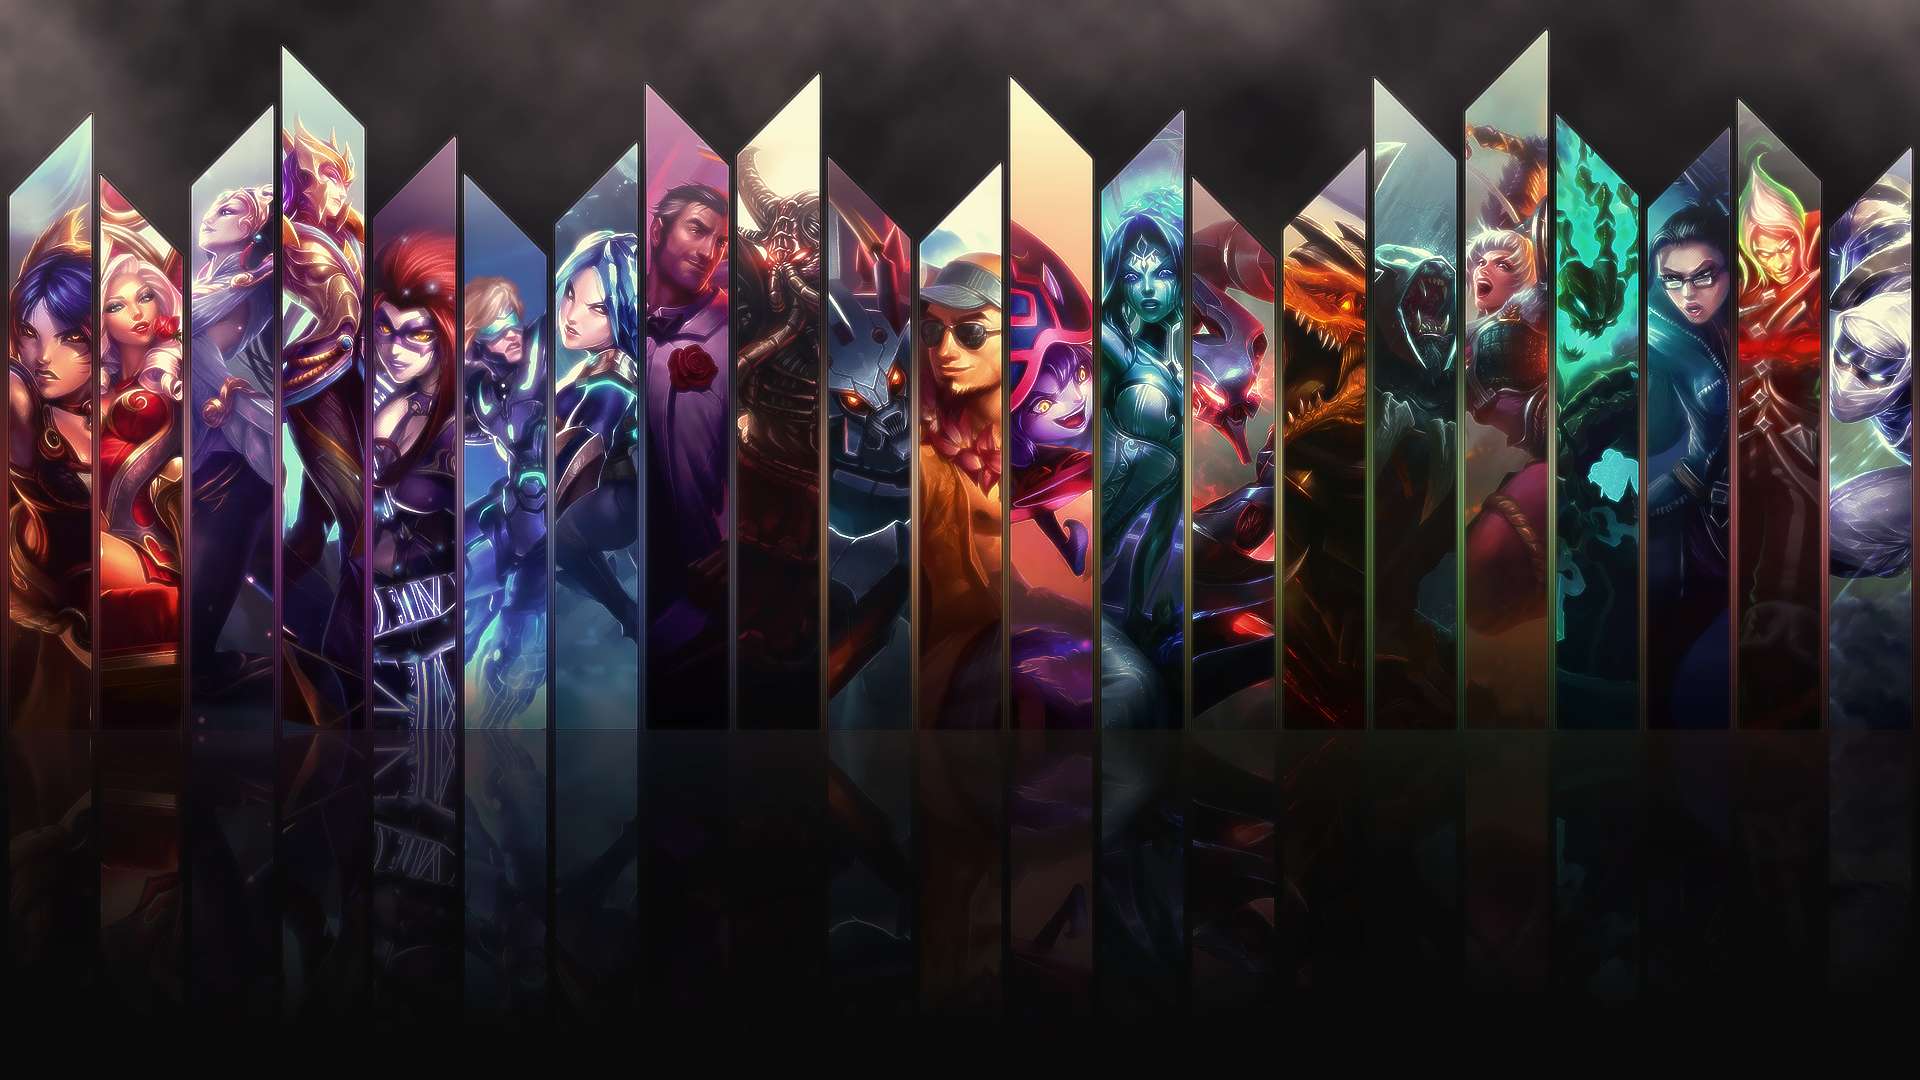 48 League Of Legends Wallpaper Maker On Wallpapersafari